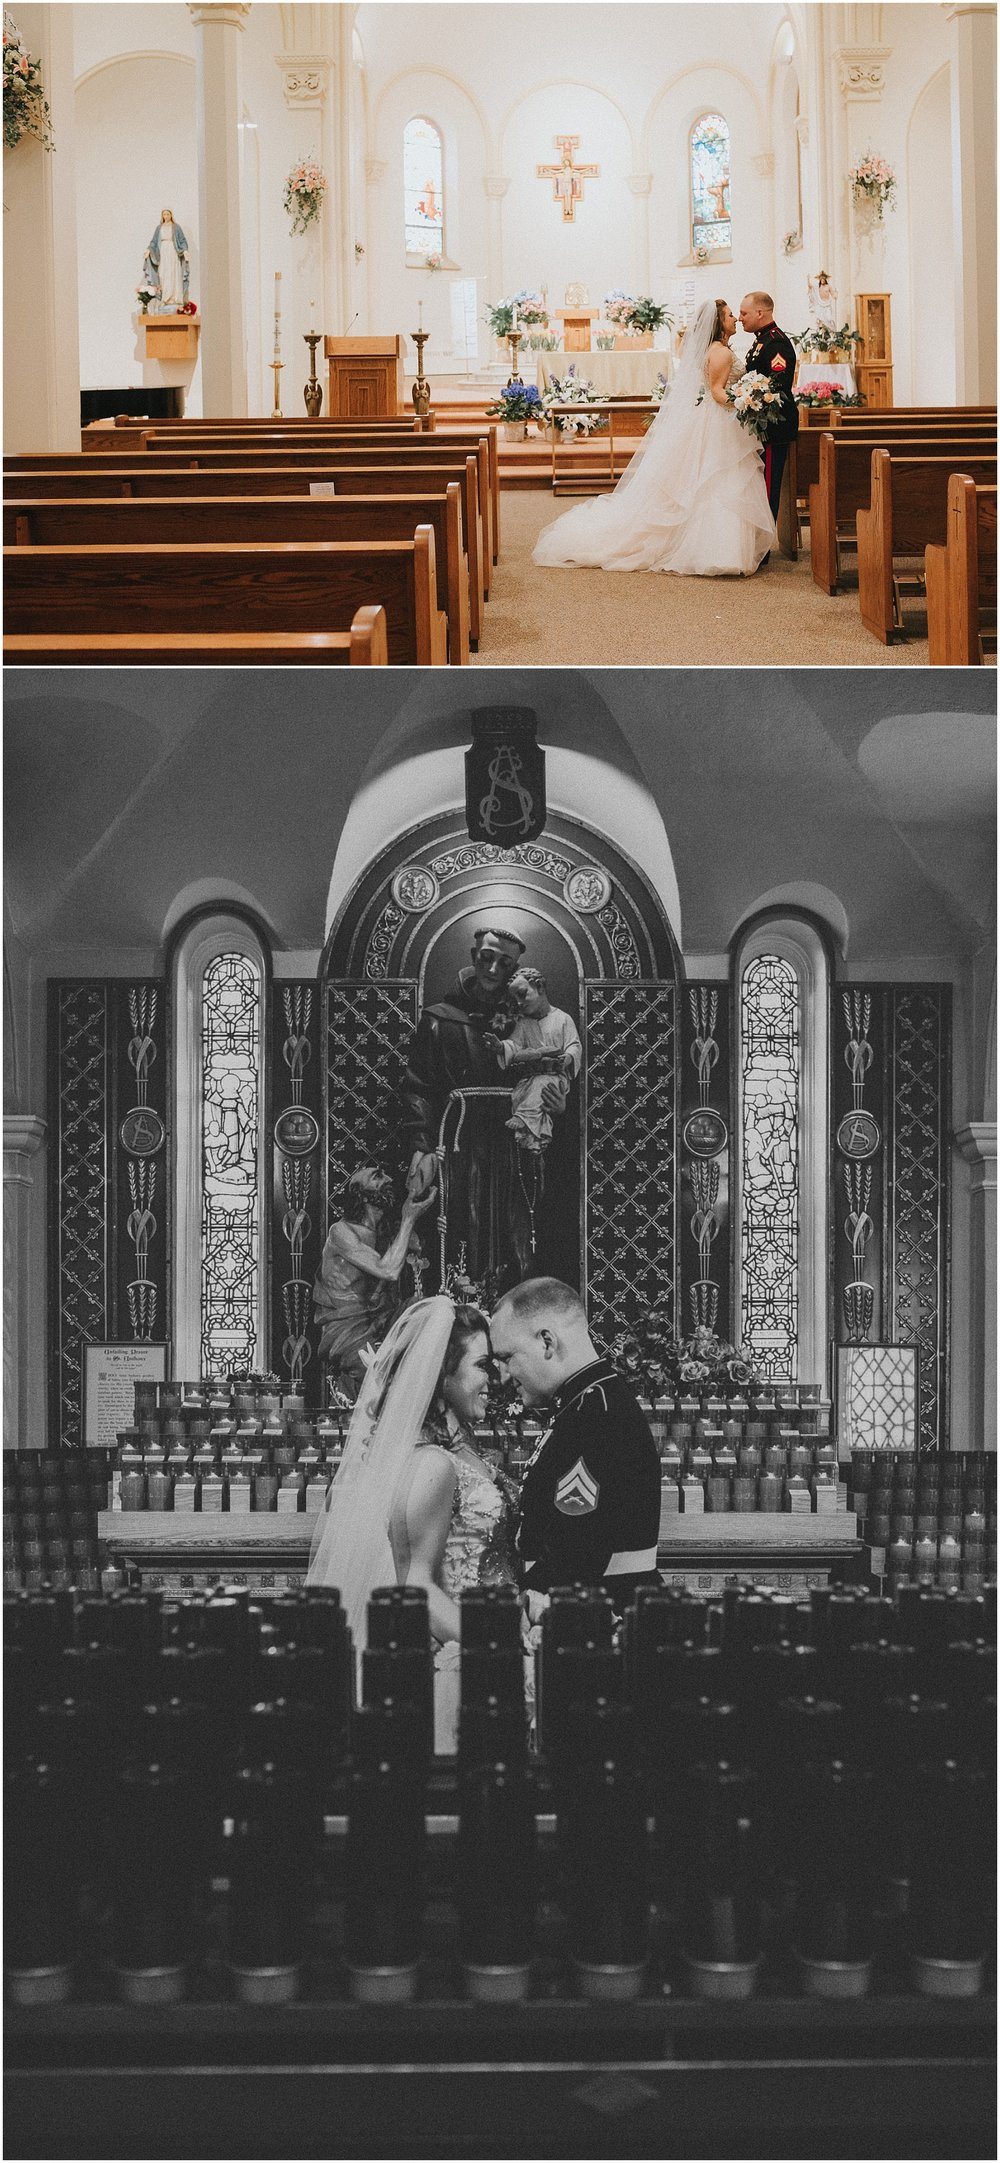 Bride and Groom portraits in a Catholic Church